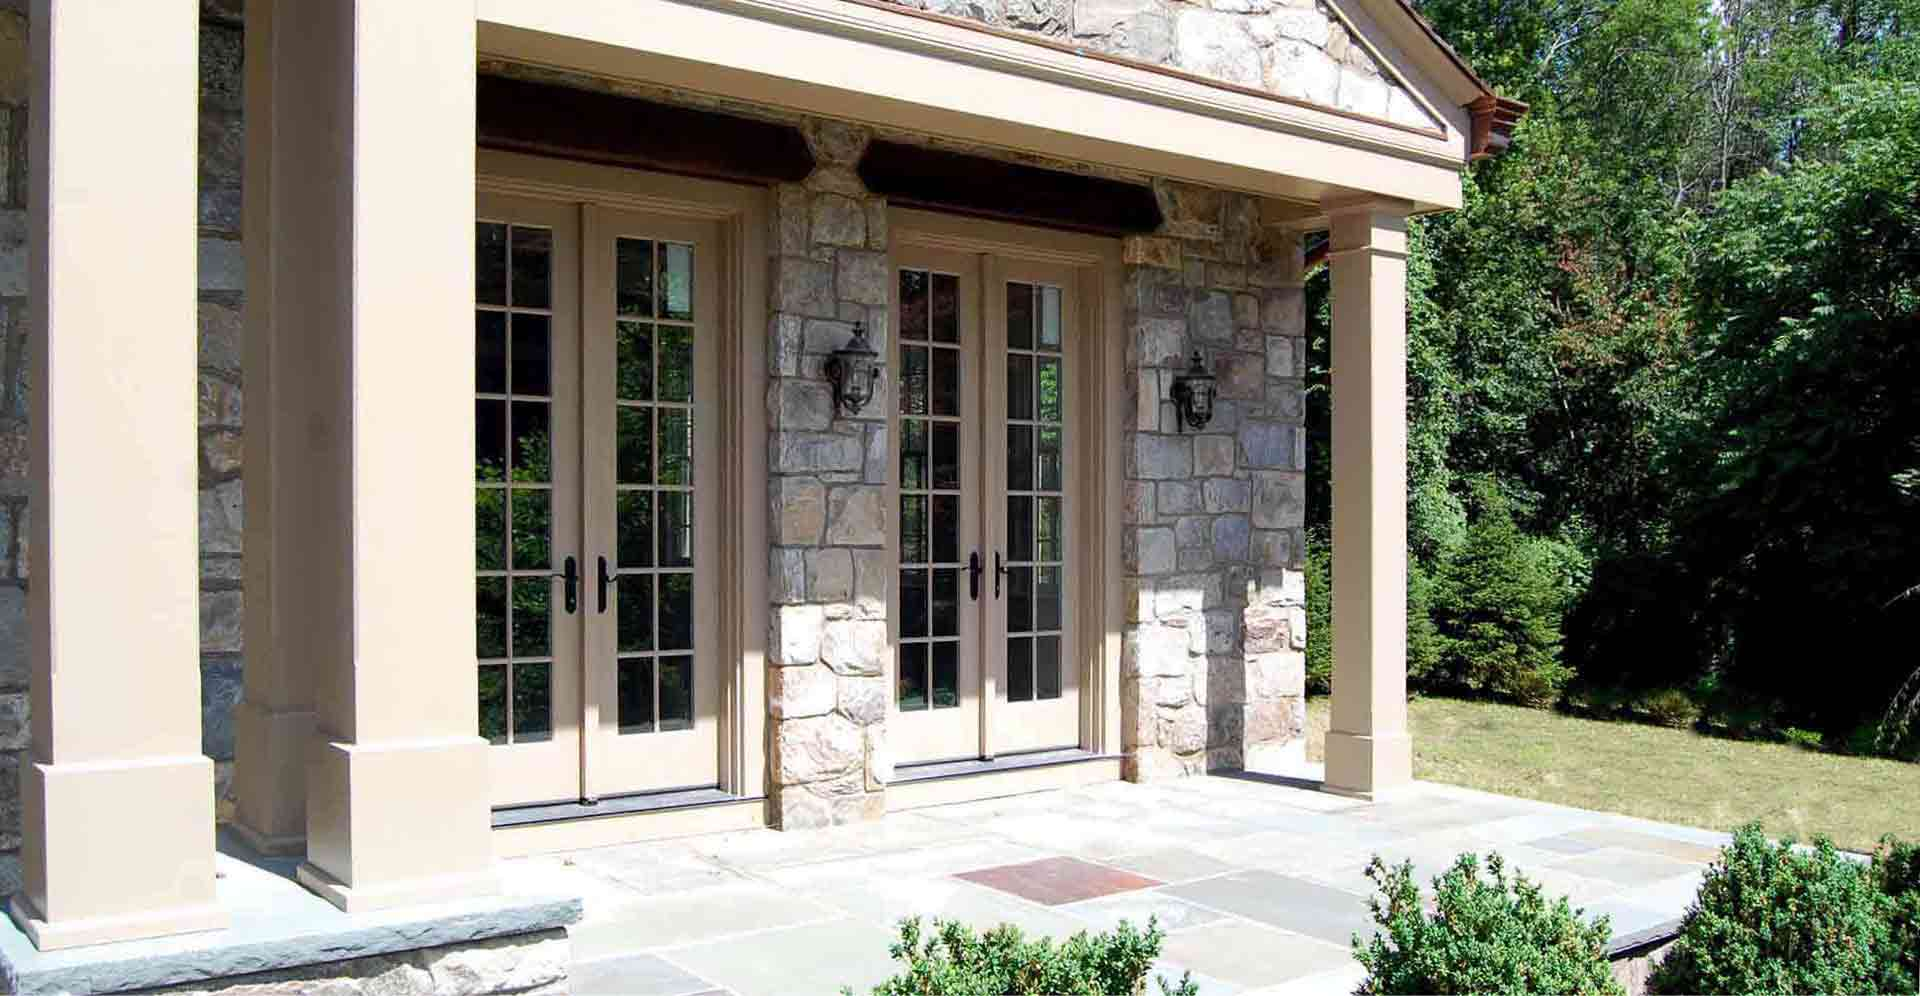 DEVON-ROAD-RESIDENCE---EXTERIOR-SIDE-PATIO-DOORS.jpg